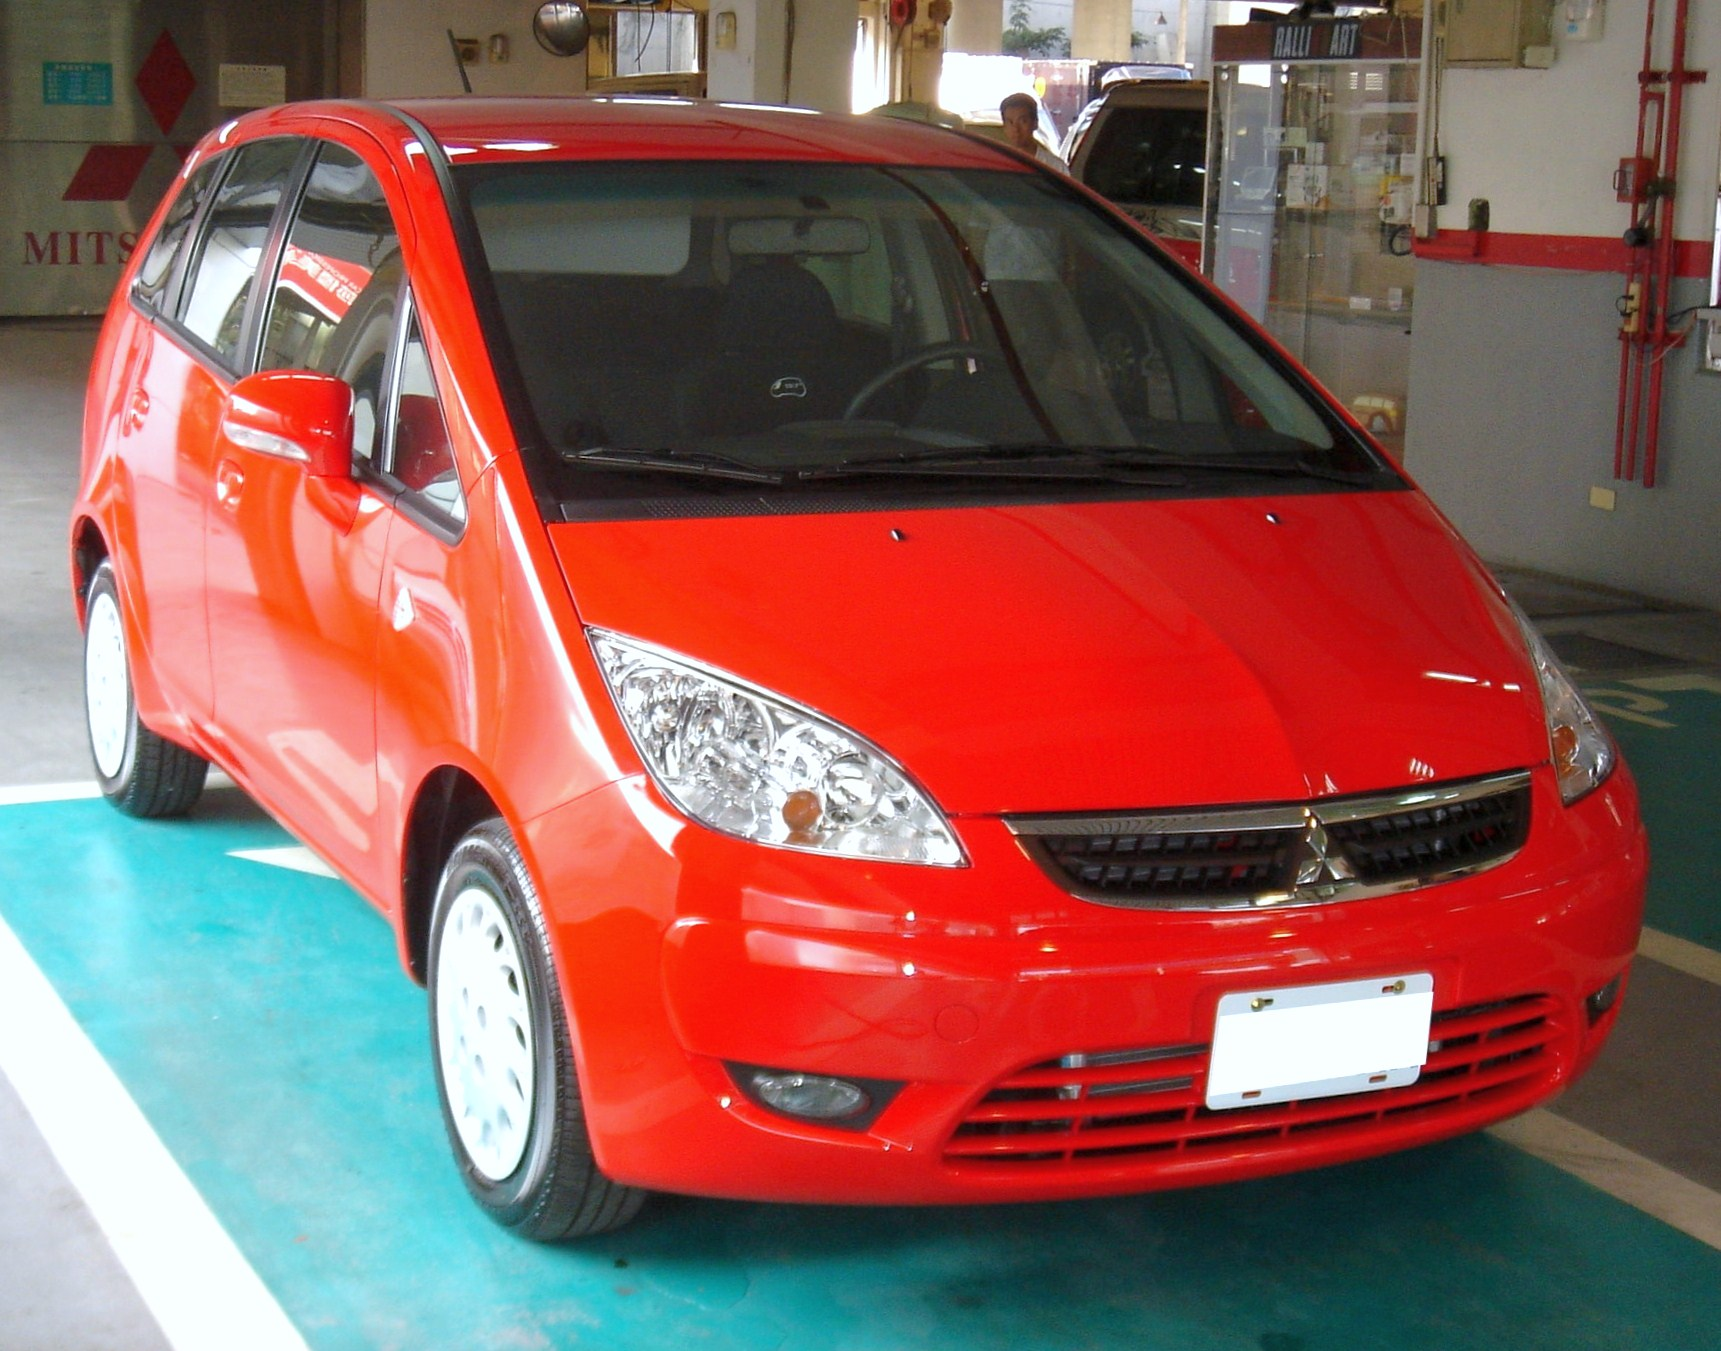 Mitsubishi Colt Wikipedia Transmission Diagram 1993 Plus 20042013